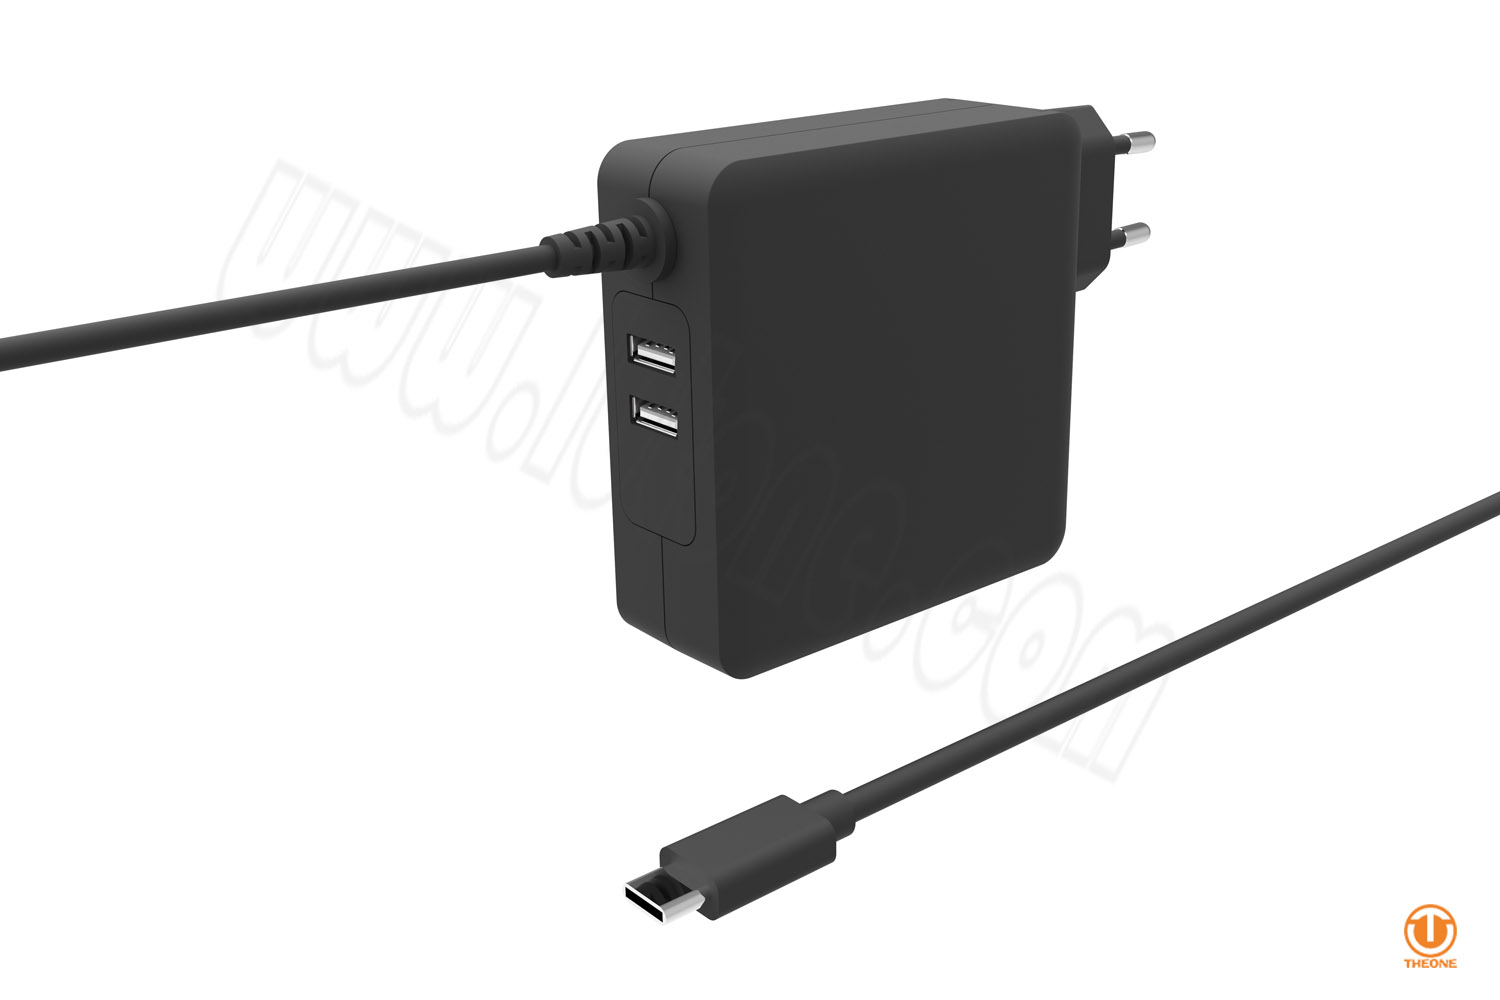 87w universal usb-c power delivery